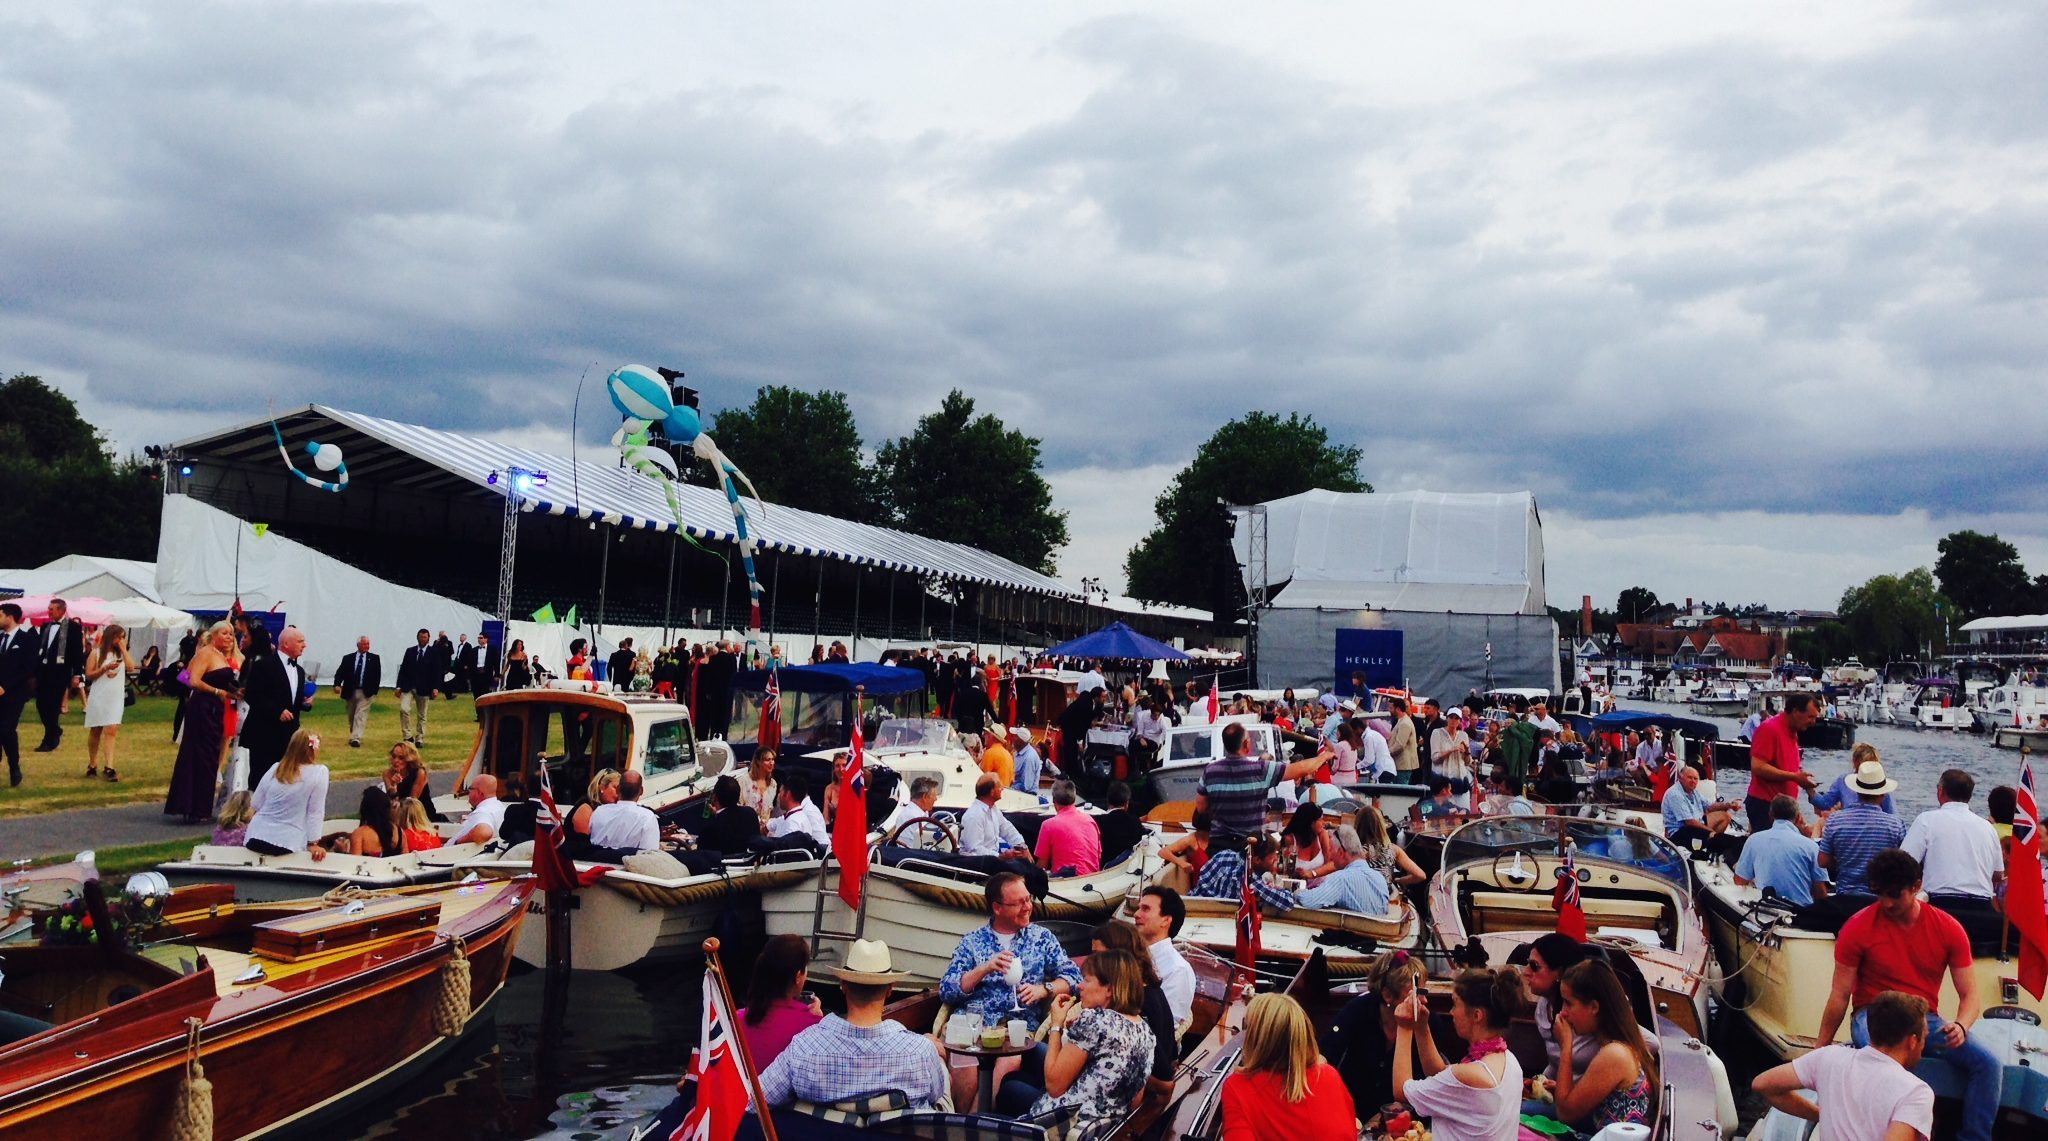 Sea of boats in the Festival enclosure in 2015